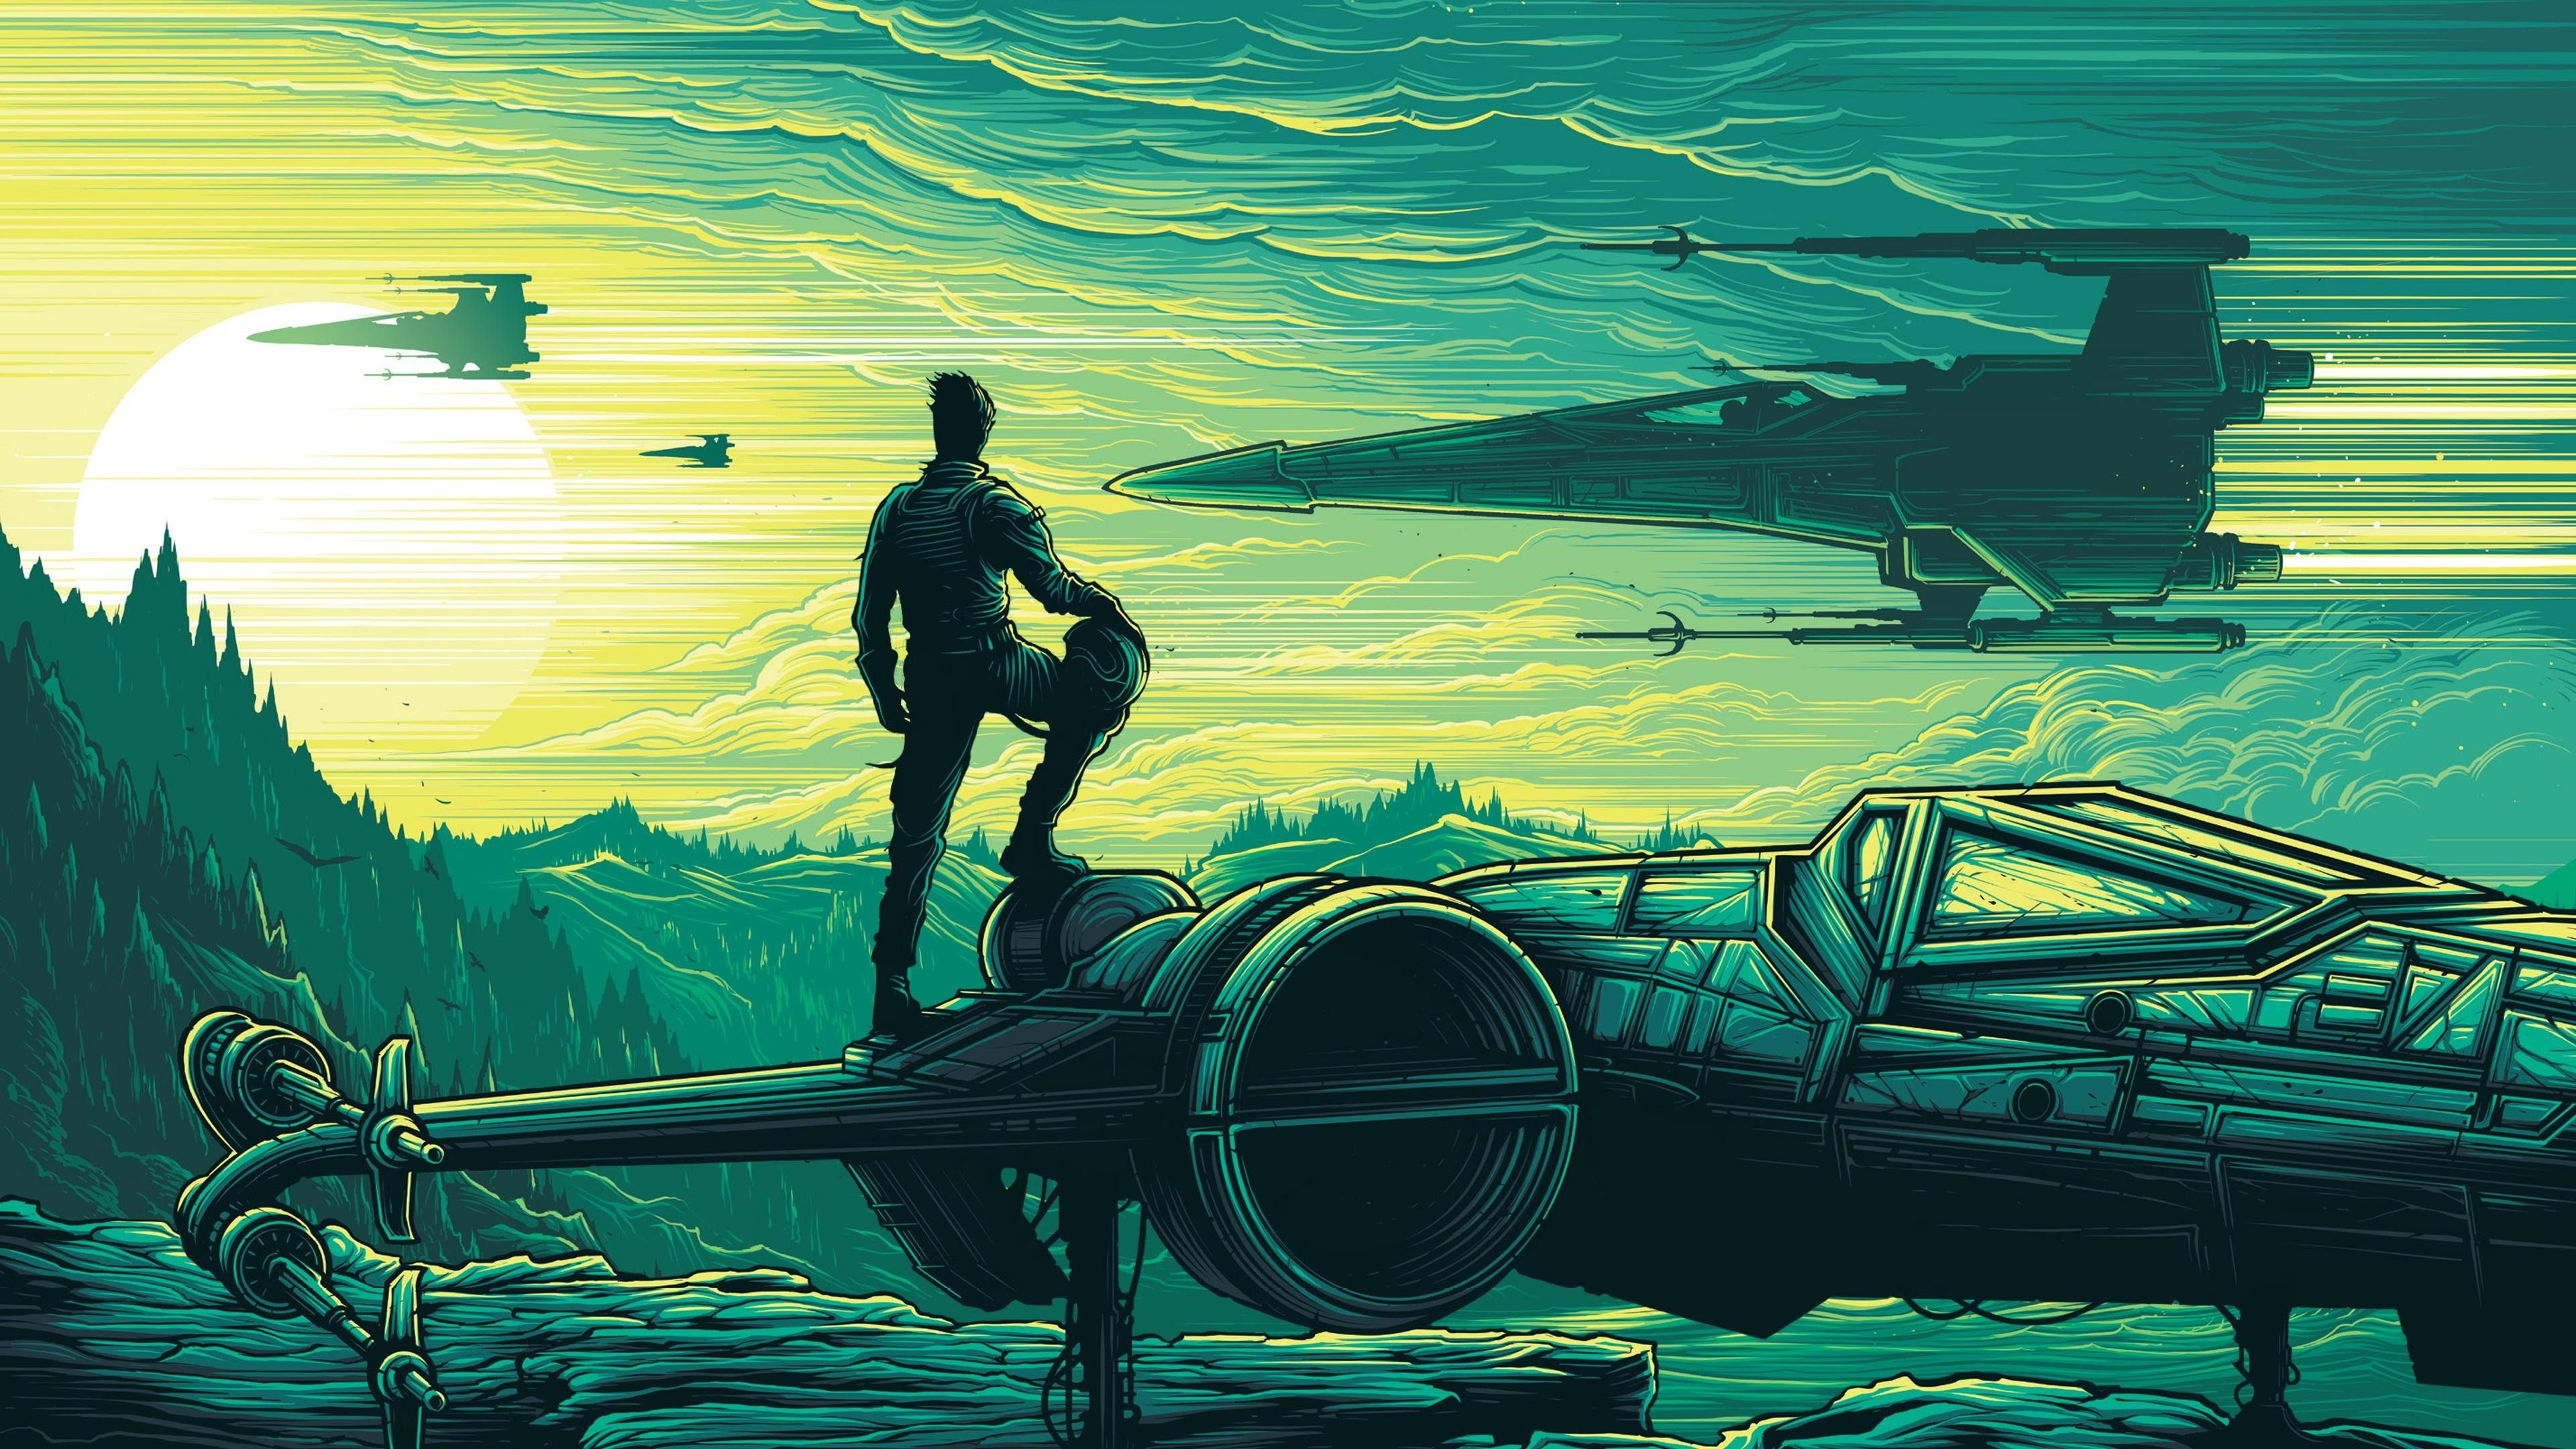 Star Wars Episode Vii The Force Awakens Star Wars Dan Mumford